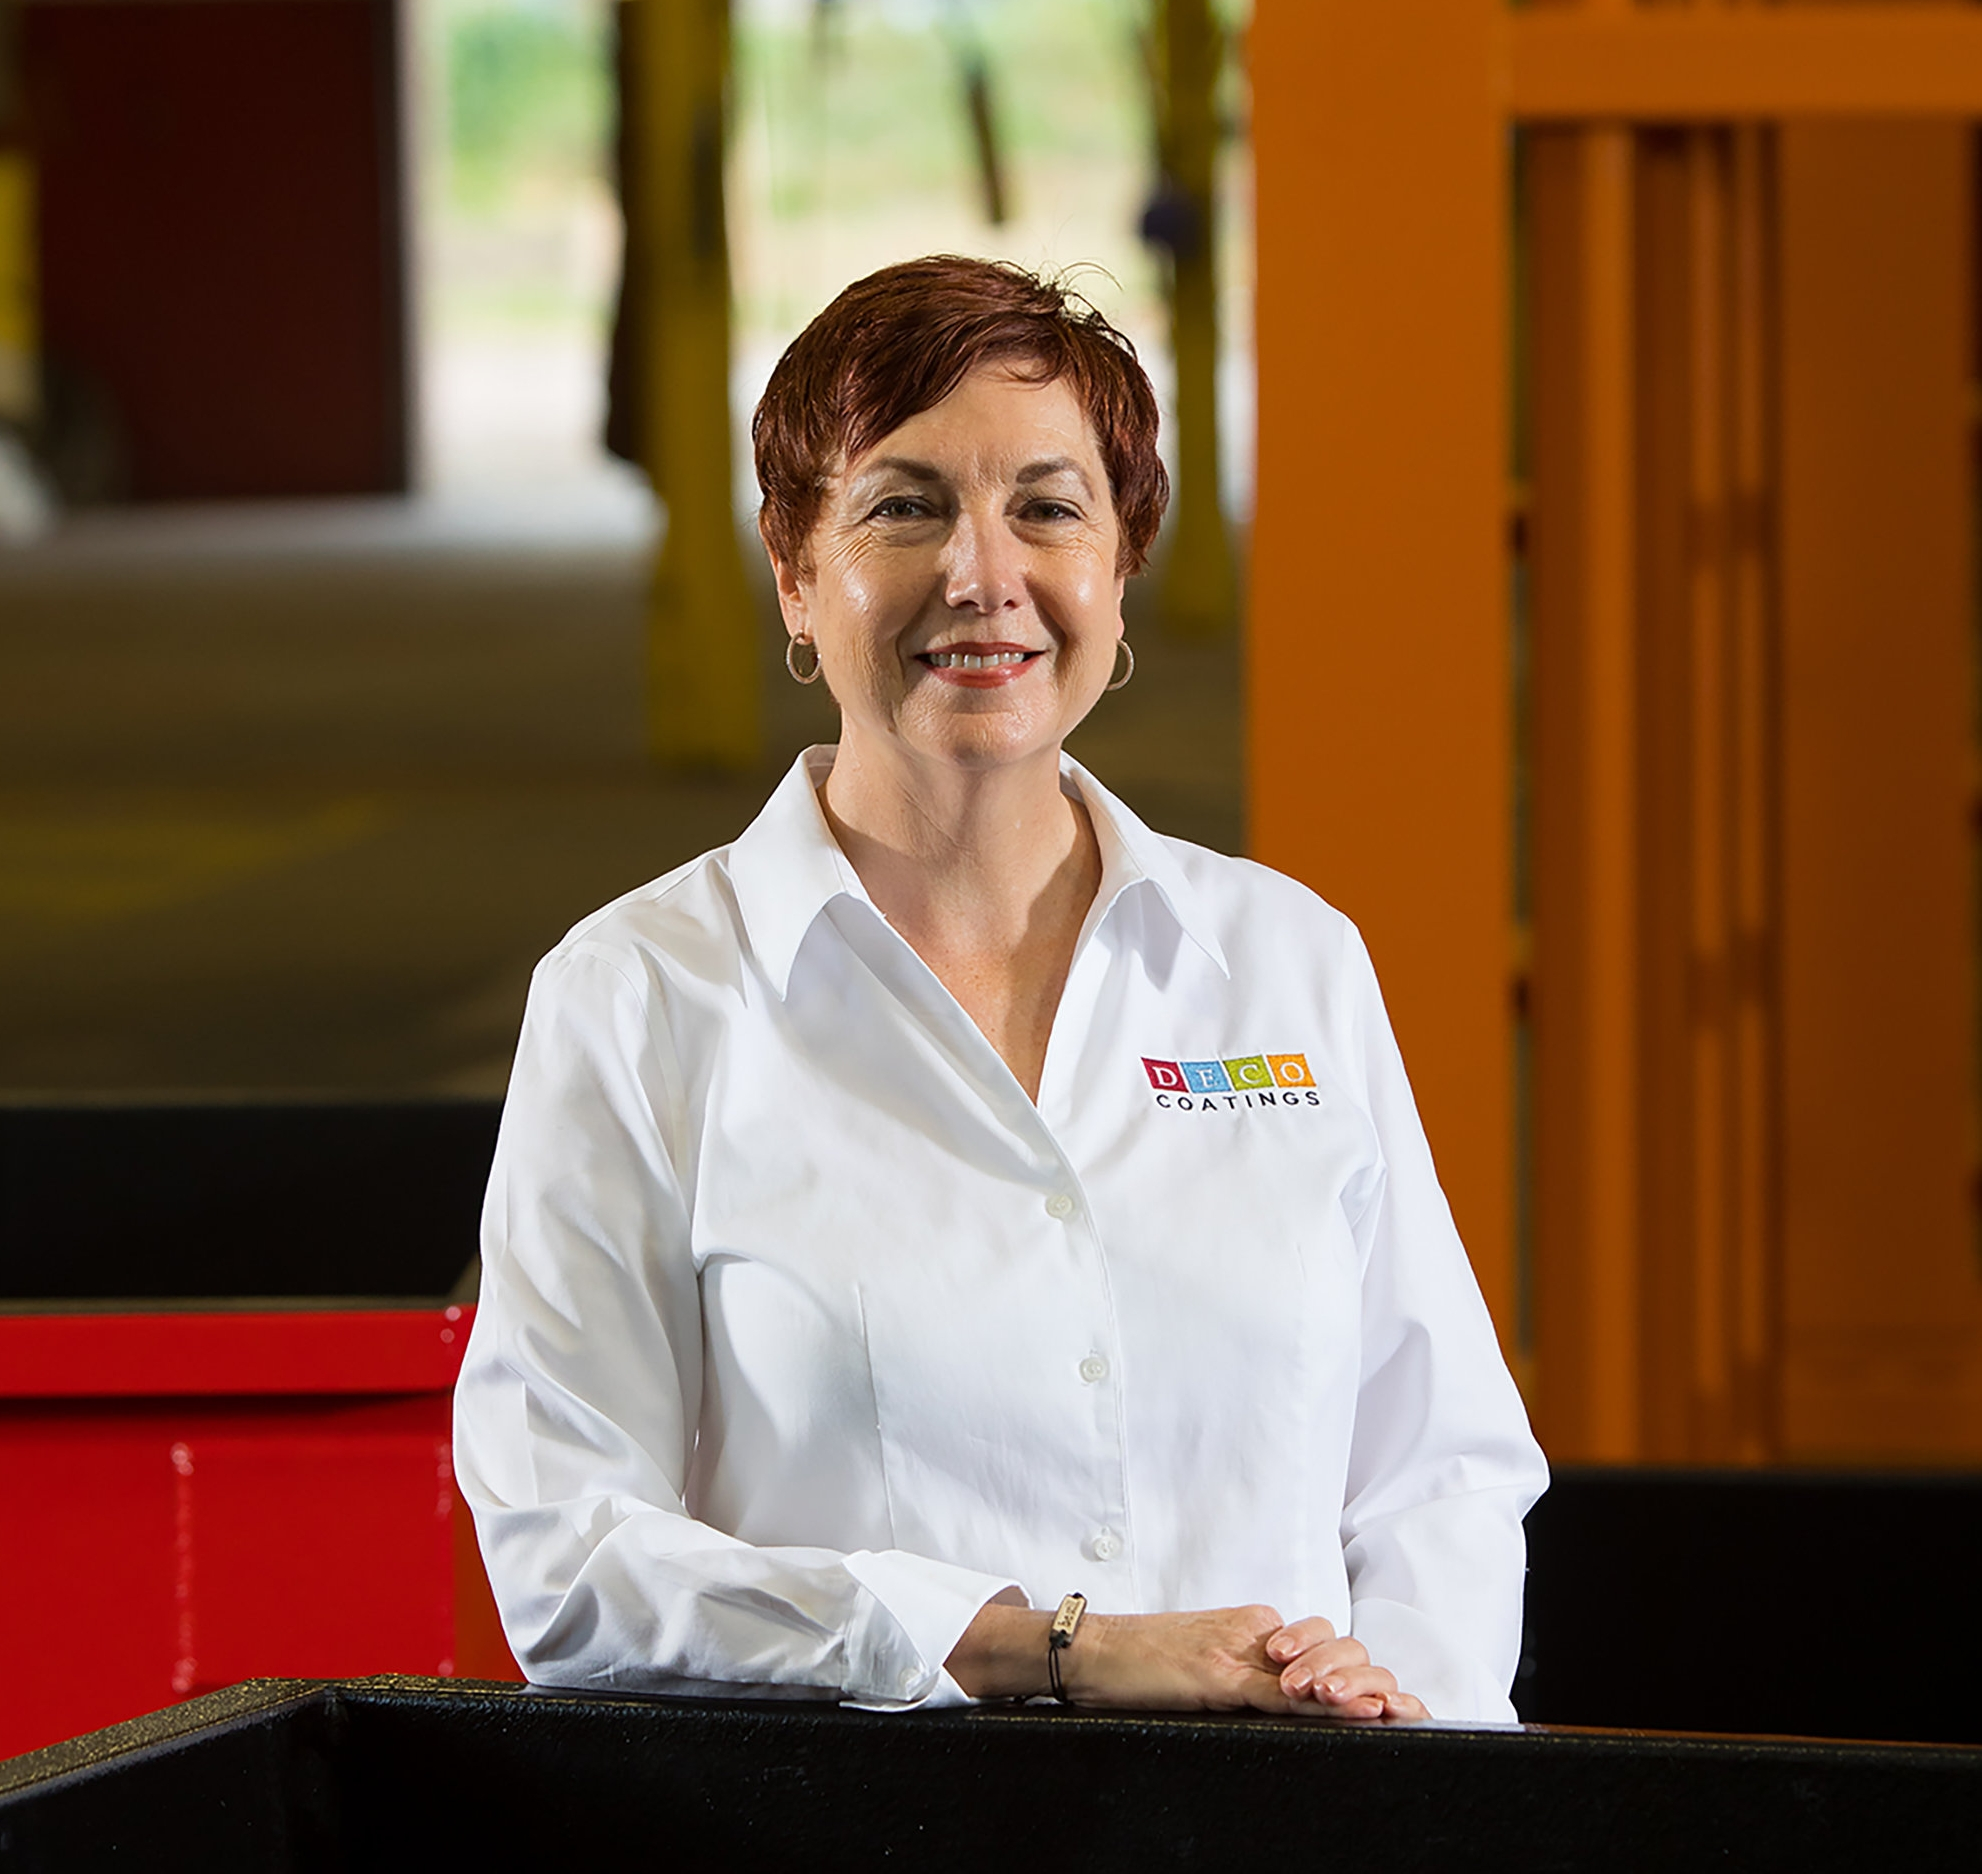 Janet South, President of DECO Coatings